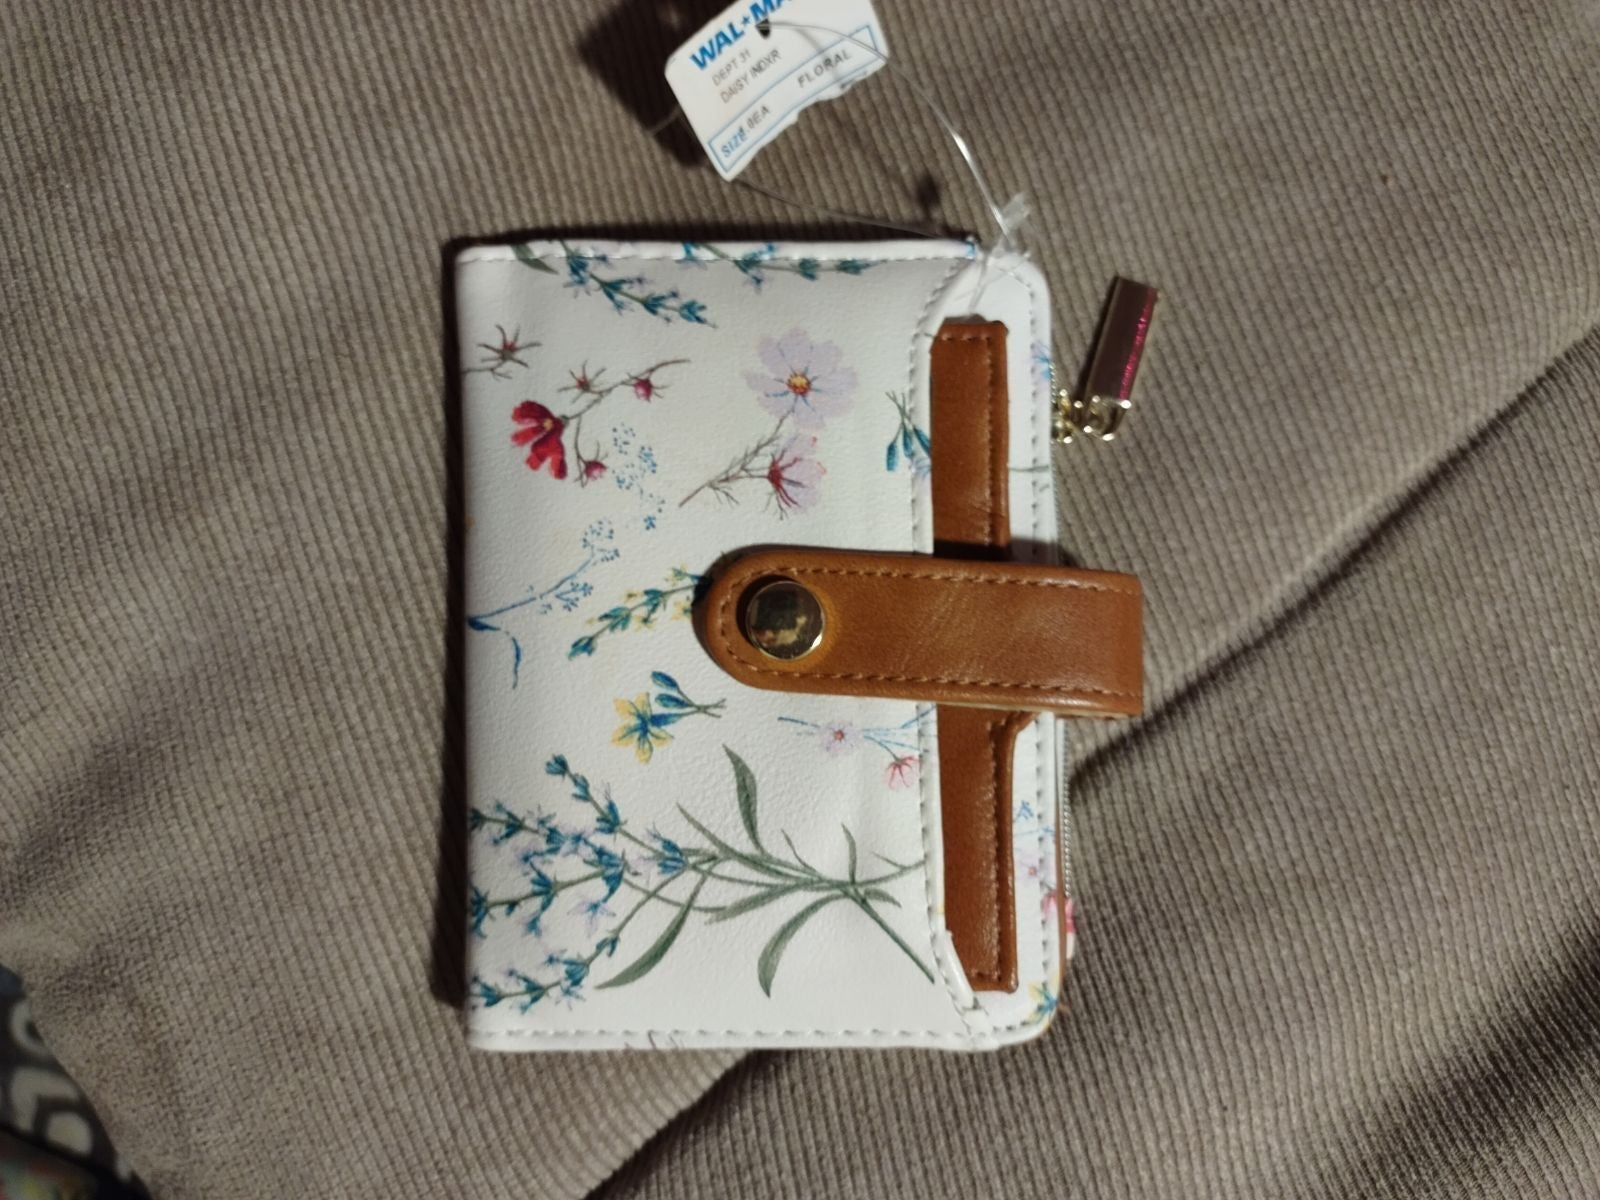 Floral Wallet, Brand New W/ tags!